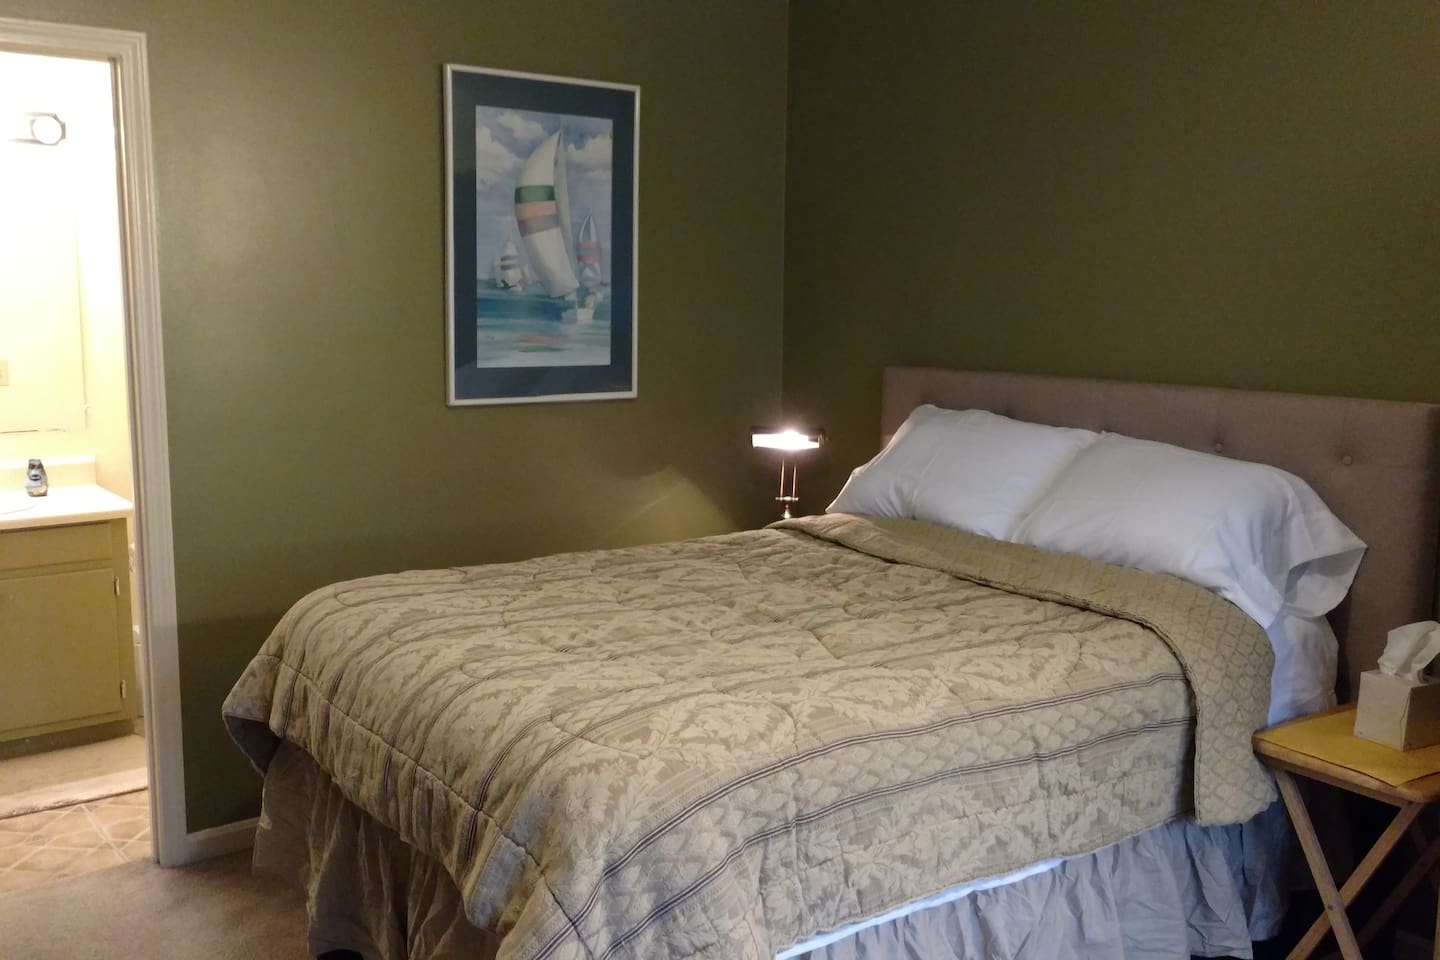 Room is comfortable for one person, a couple, a small family or a few friends